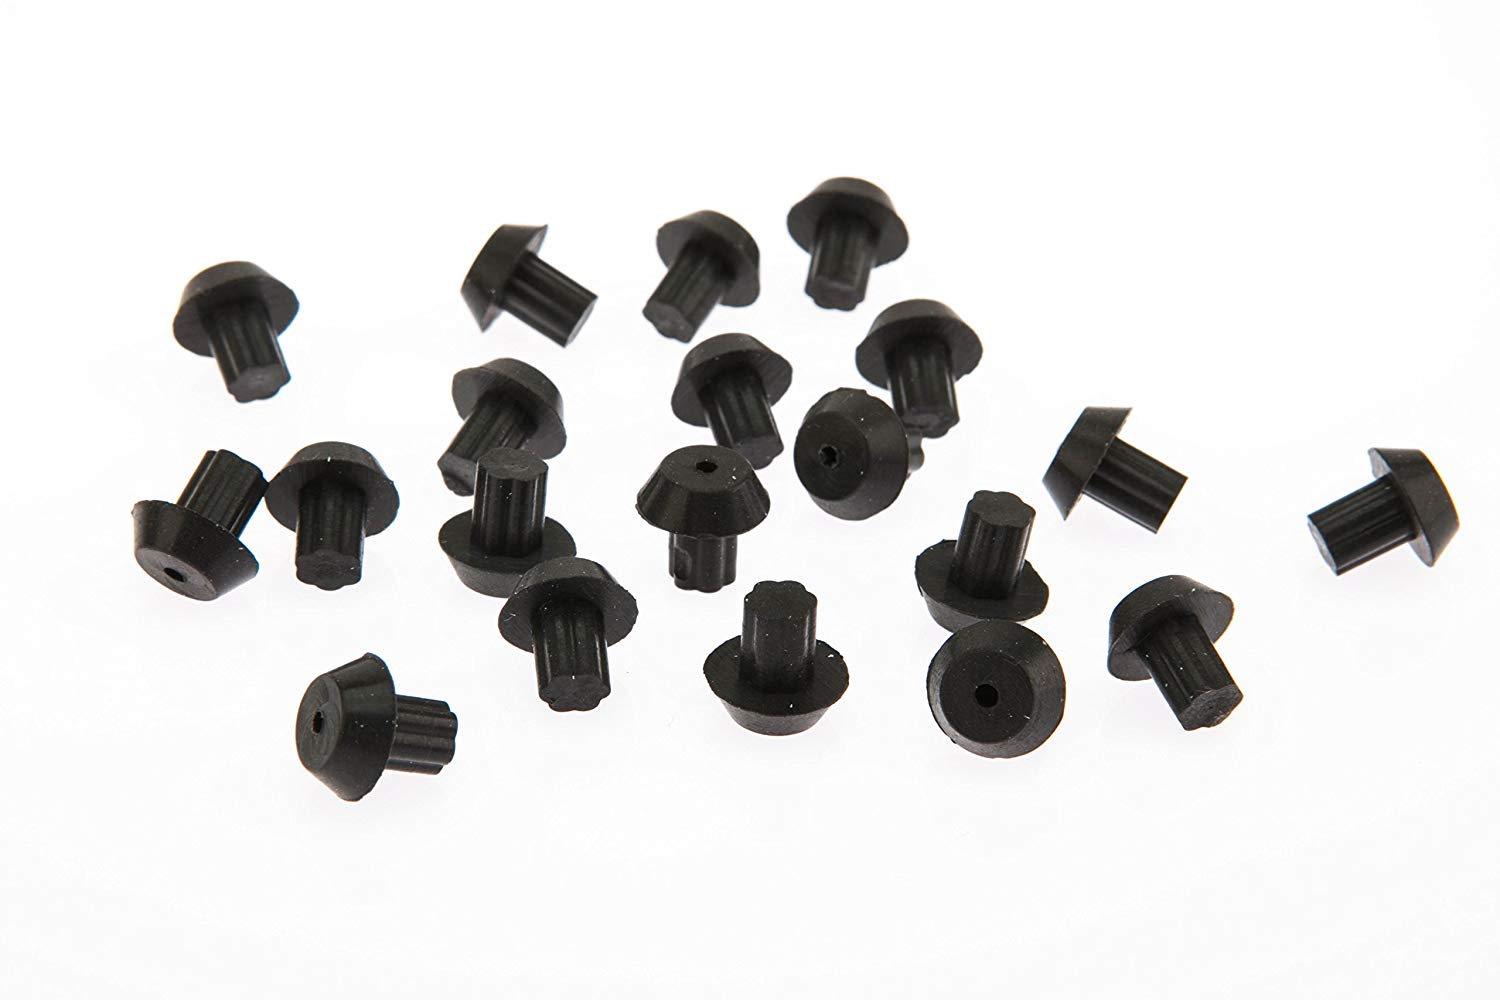 Genuine Rubber Foot Cast Iron Pan Support 11380640